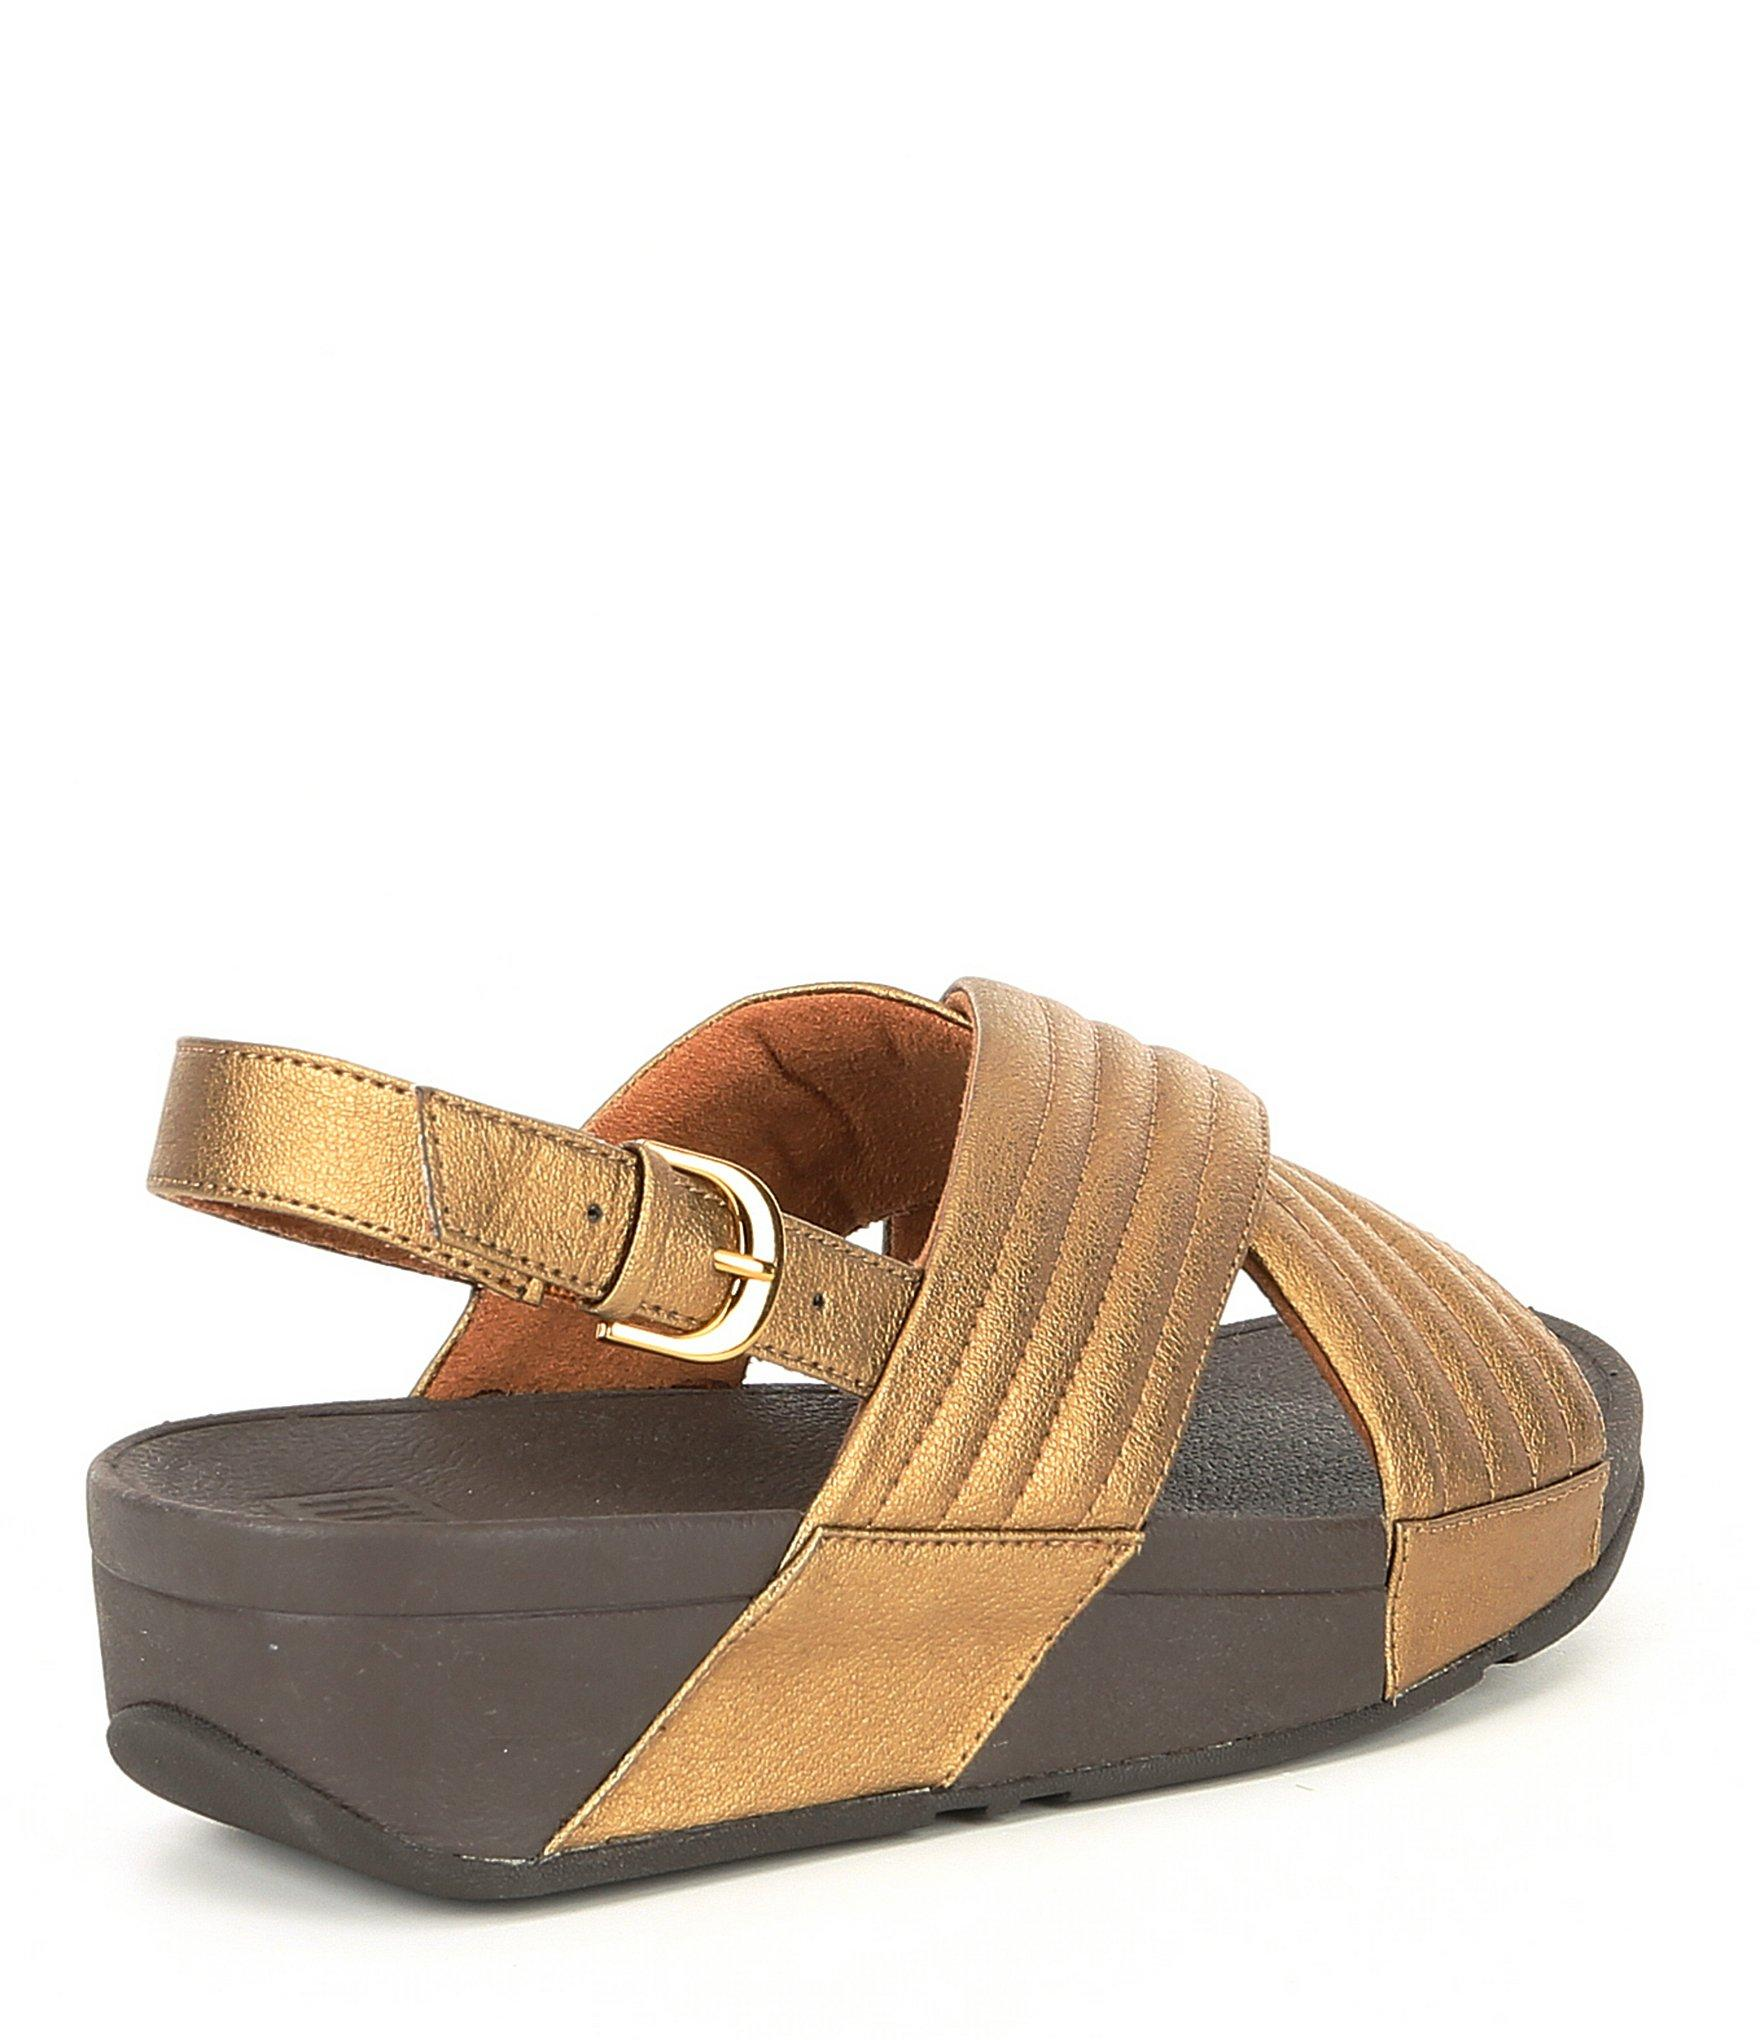 401159474cf2 Fitflop - Brown Lulu Leather Padded Back-strap Sandals - Lyst. View  fullscreen